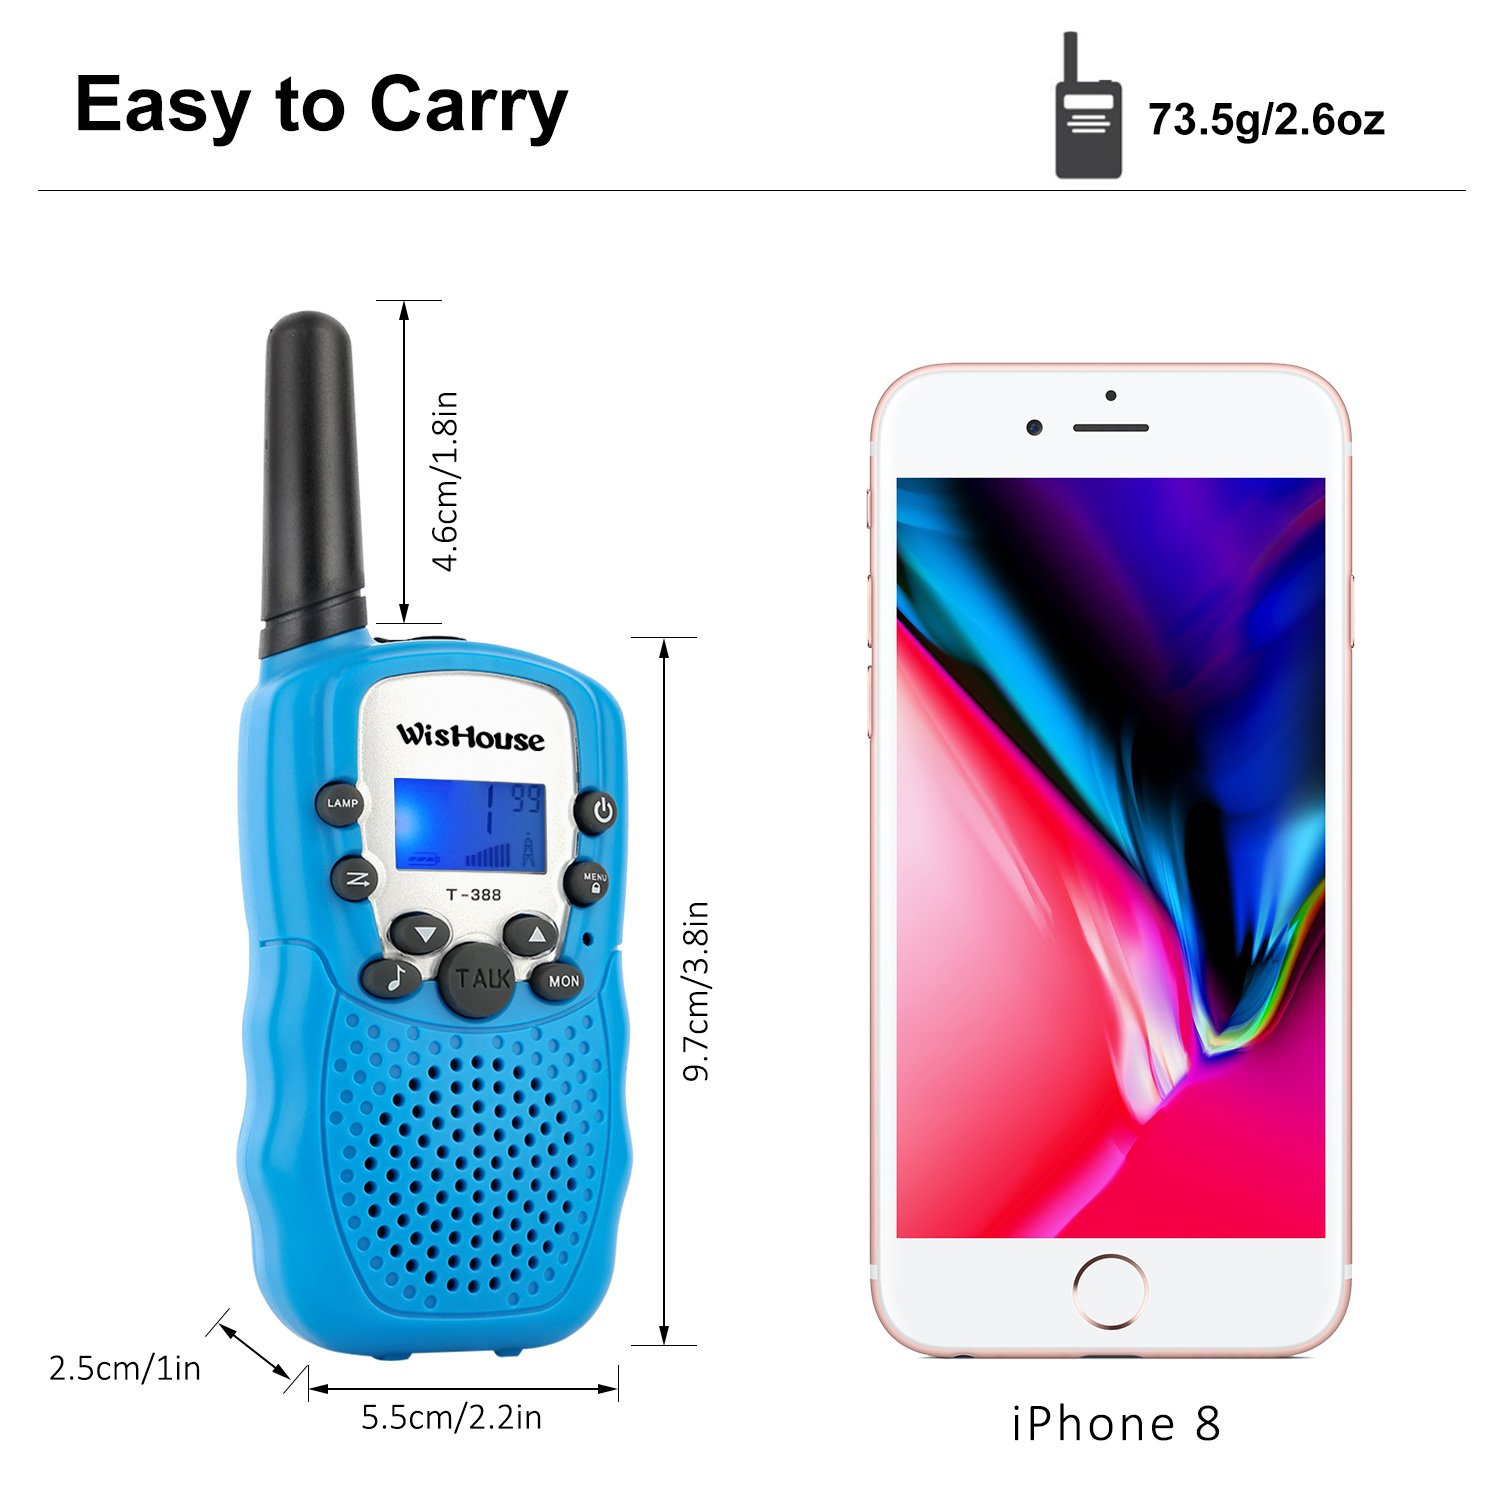 WisHouse Walkie Talkies for Kids,Fashion Toys for Boys and Girls Best Handheld Two Way Radio with Flashlight for 4 Year Old and up to Camping Hiking Riding and Cruise Ship(T388 Blue 4 Pack) by Wishouse (Image #5)